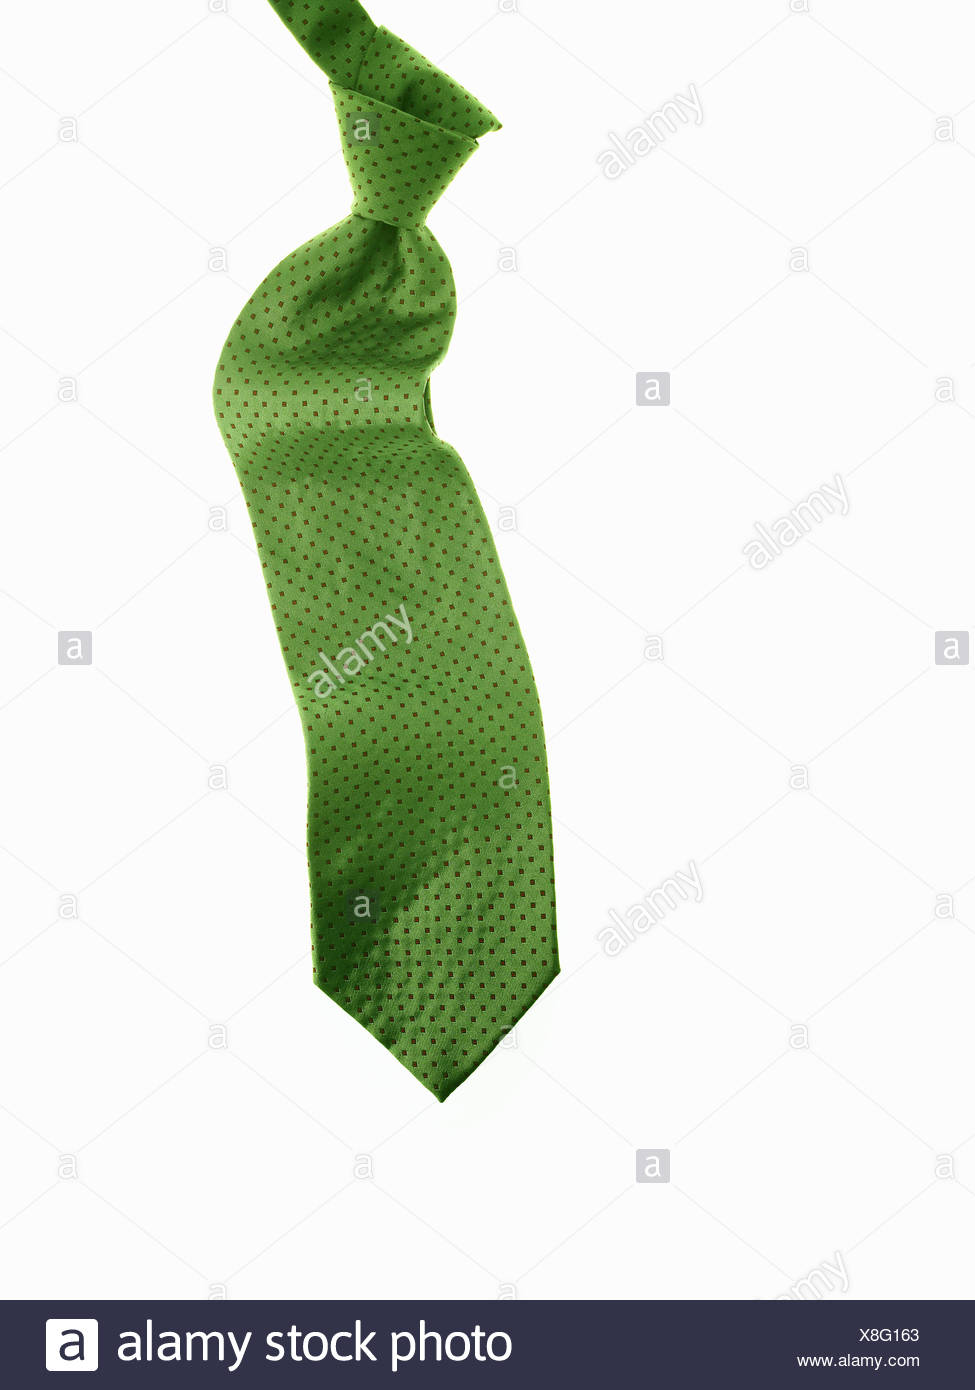 knotted green fabric tie or necktie - Stock Image